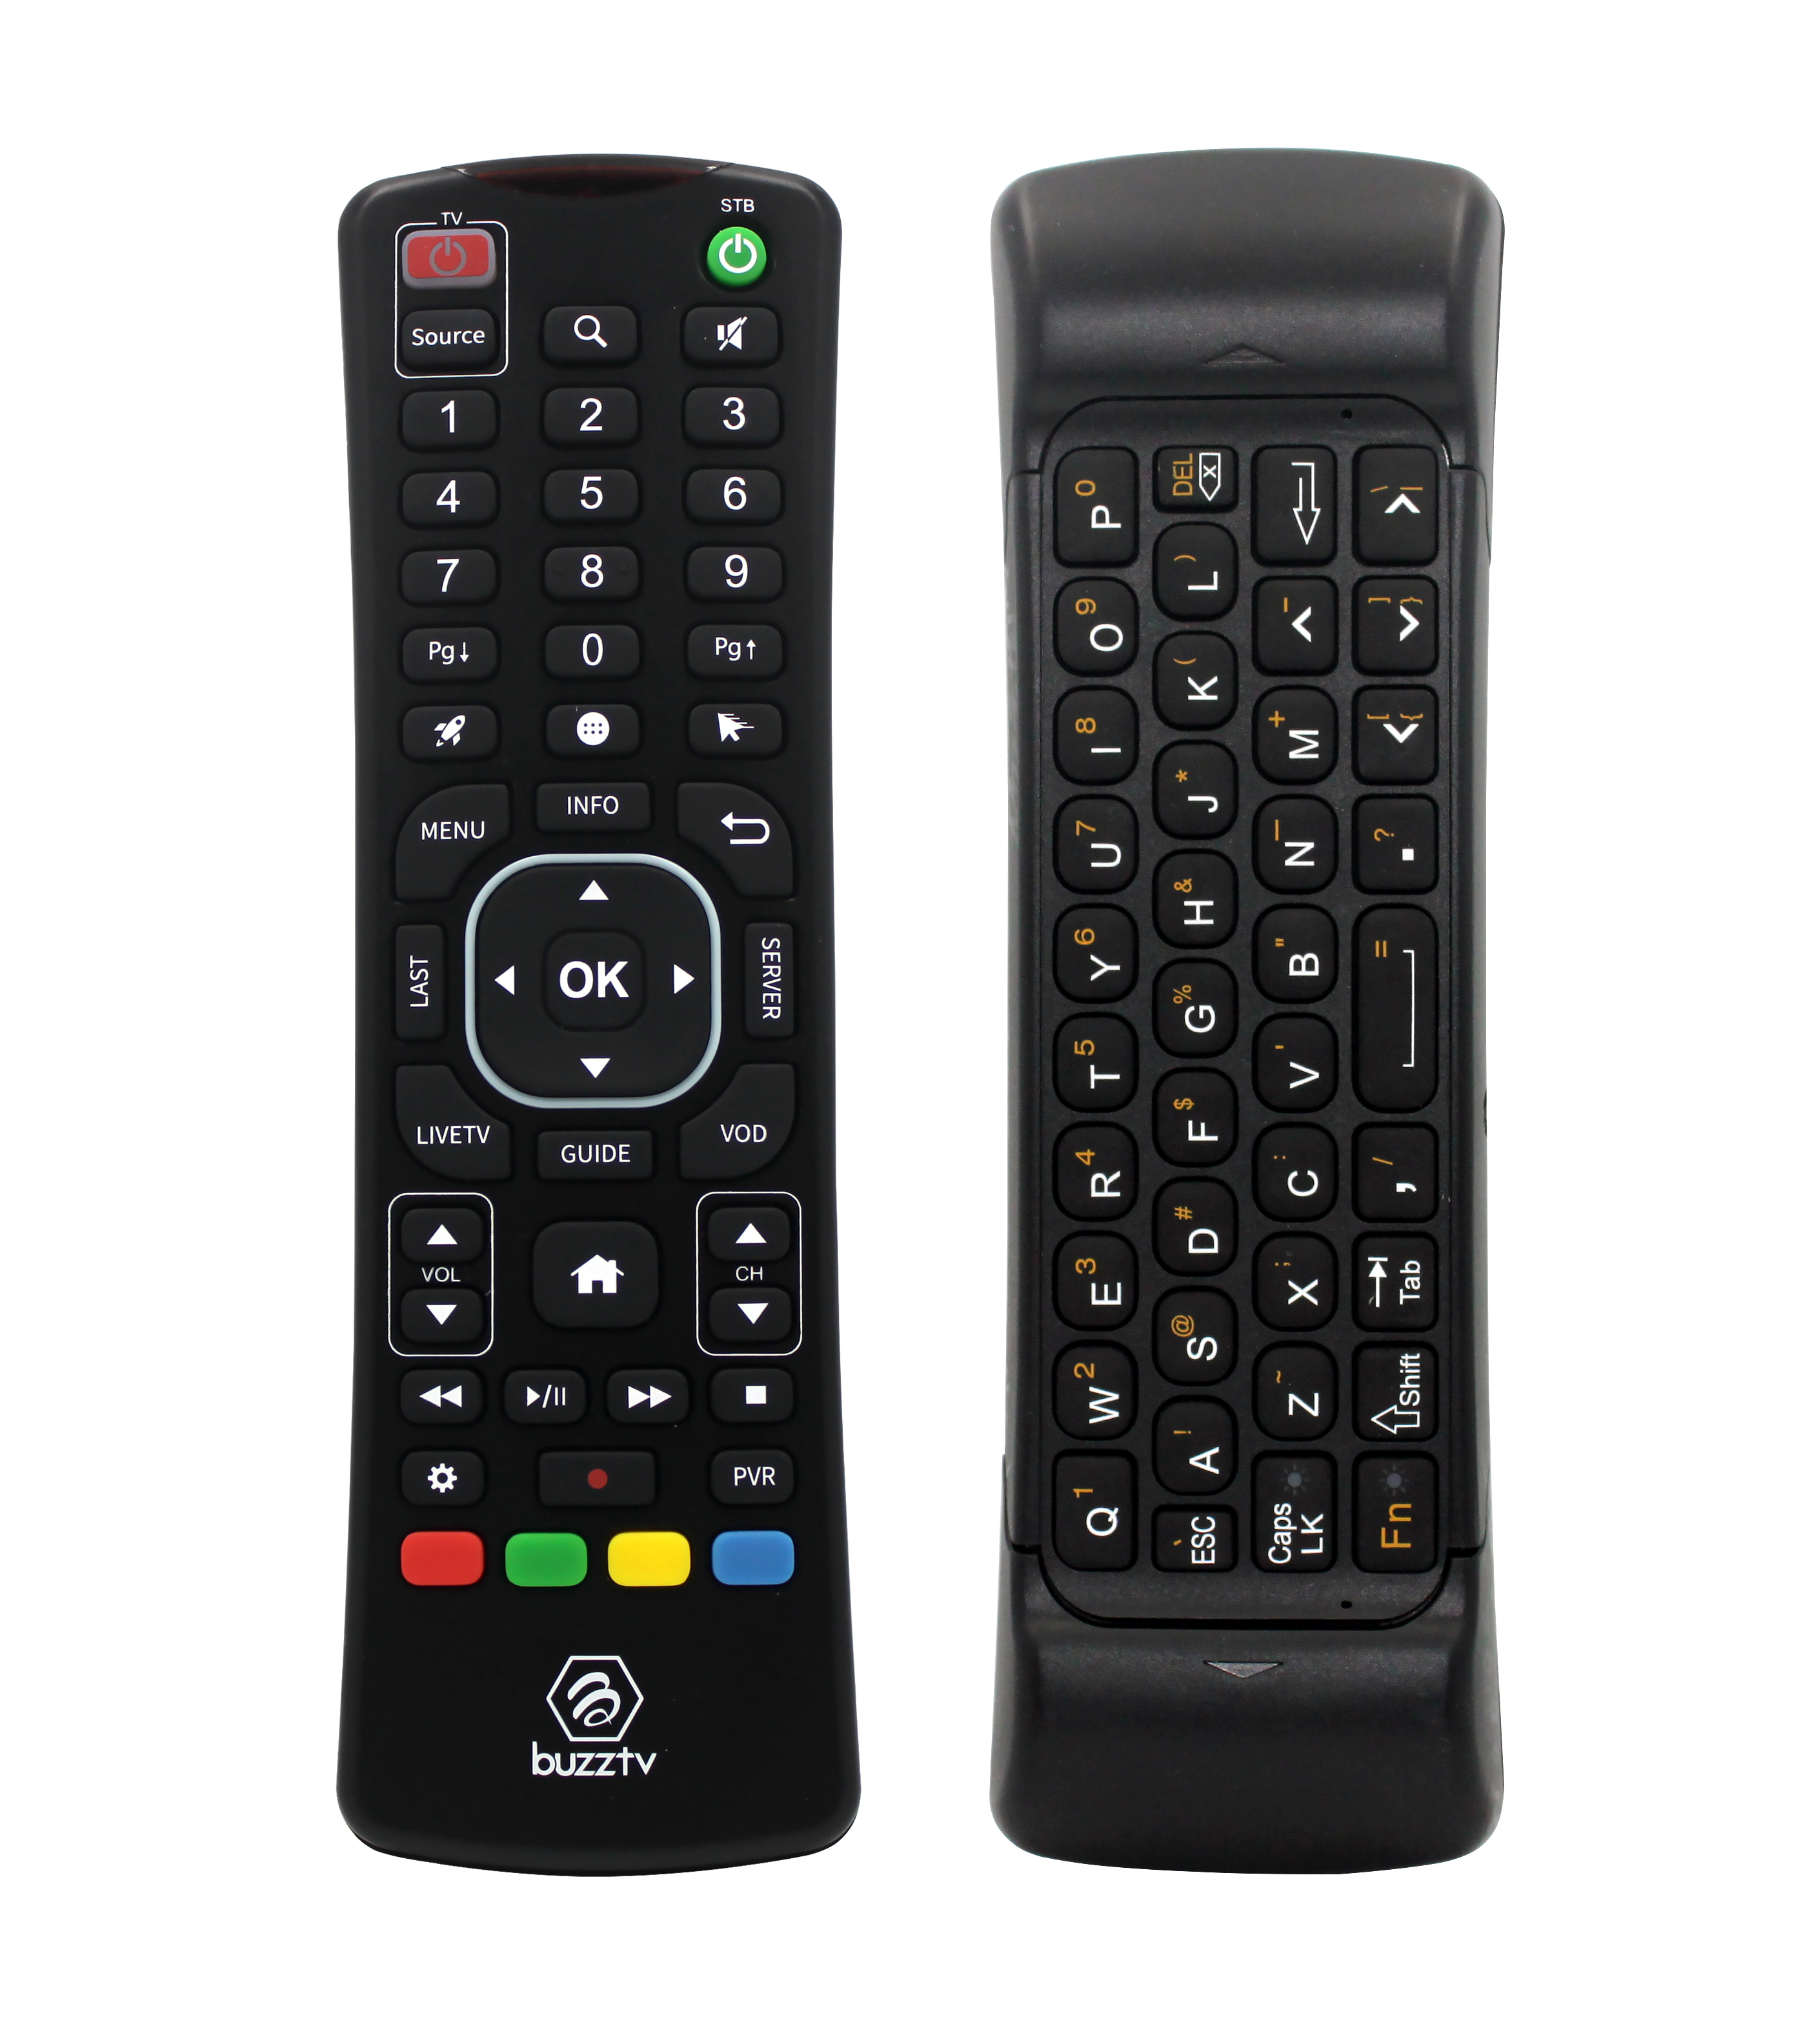 BuzzTV ARQ-100 Wireless Air Mouse Keyboard Remote